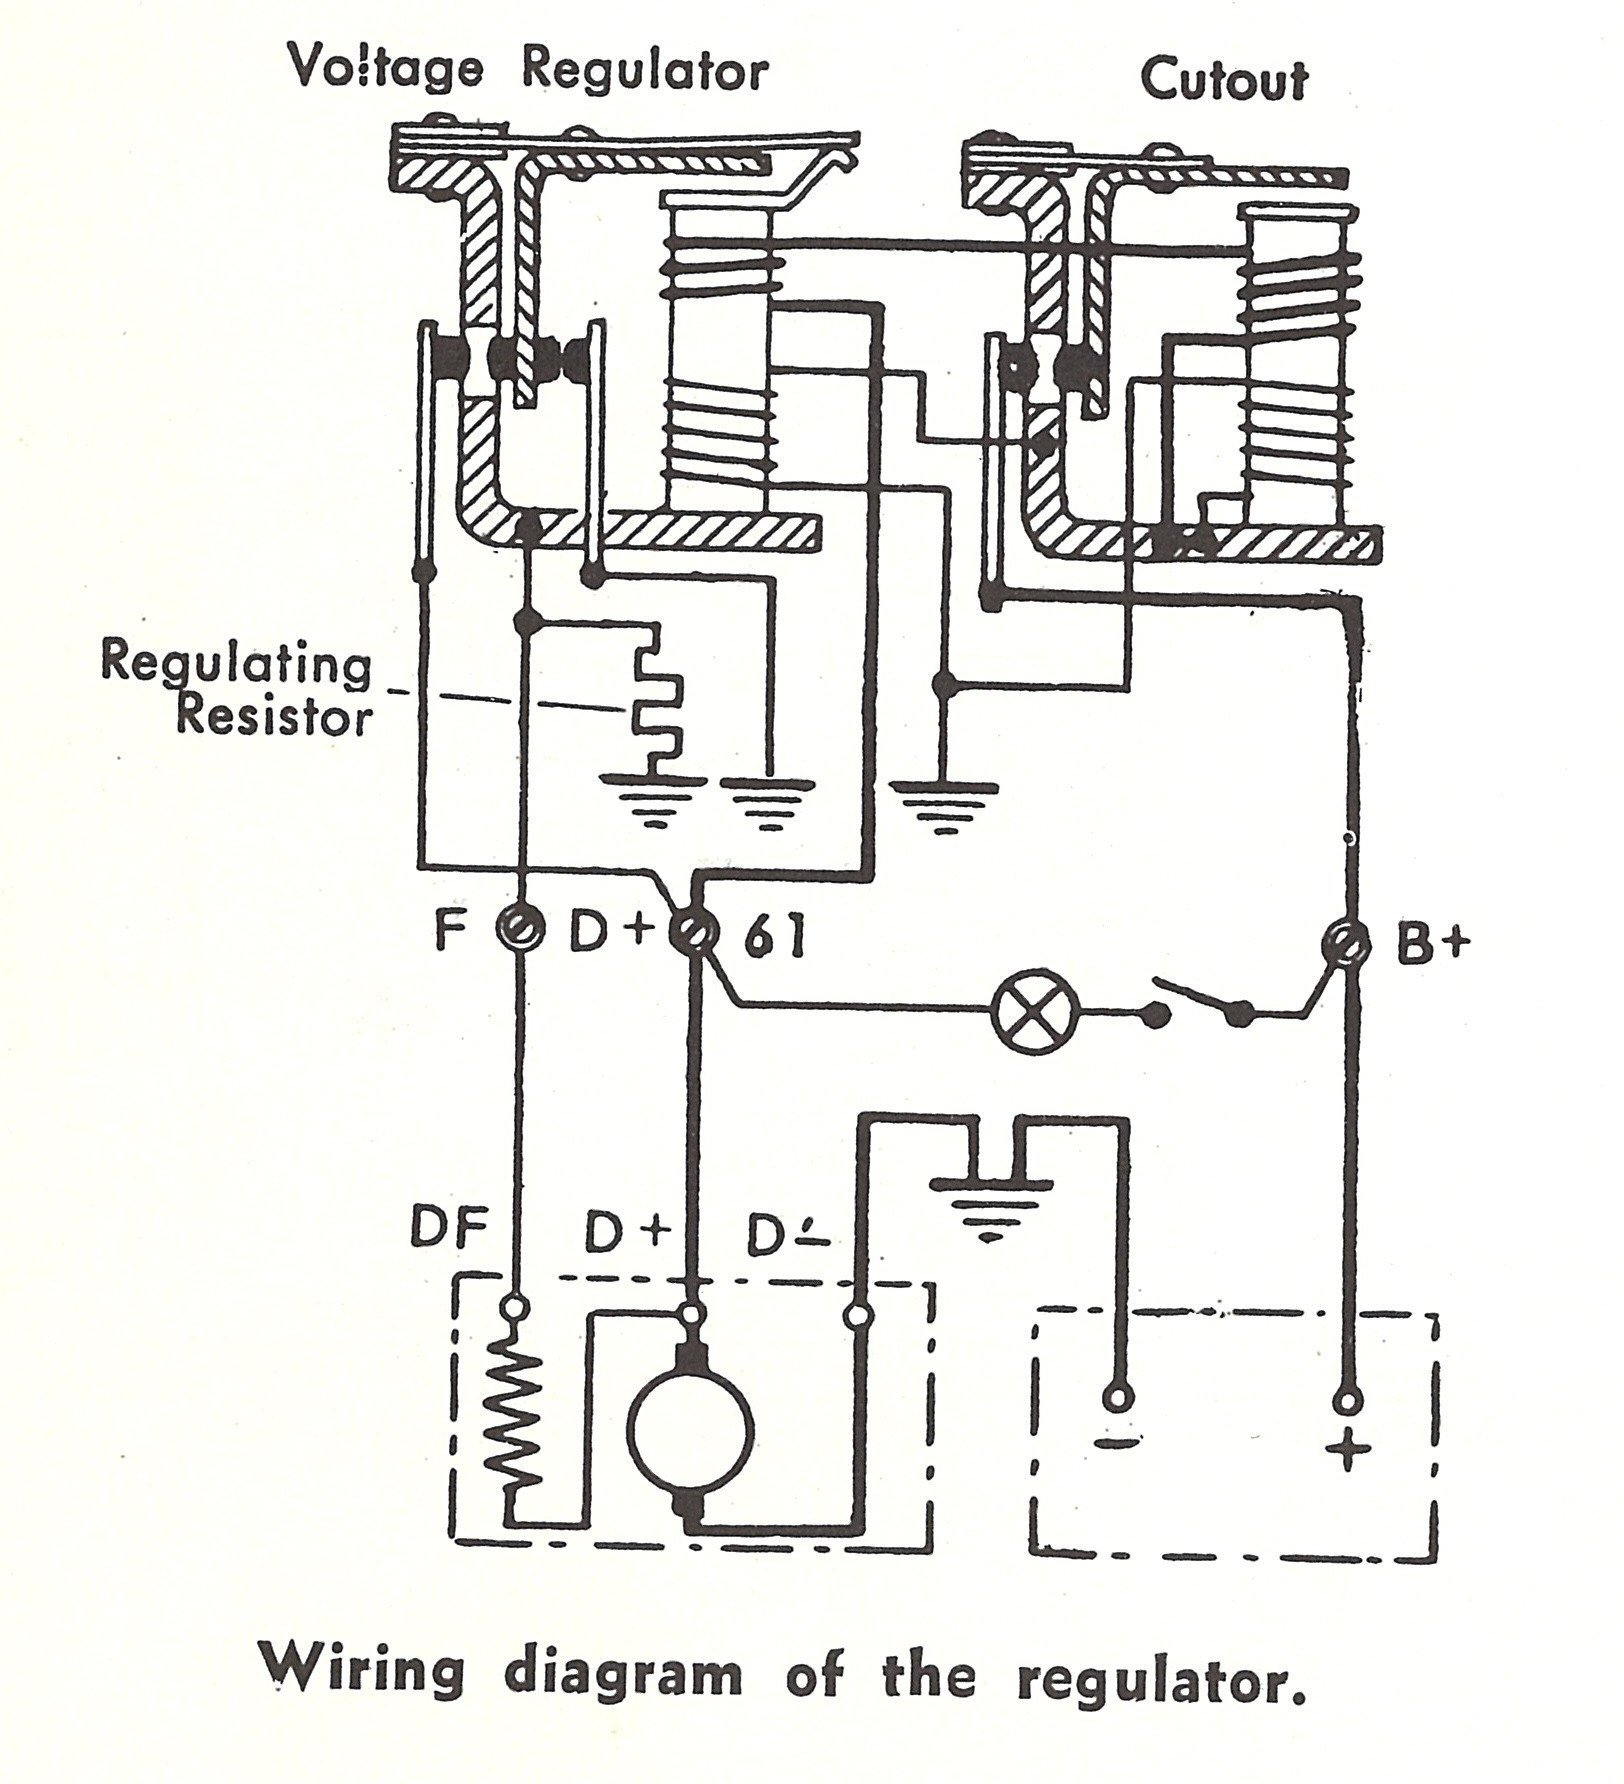 voltage_regulator_diagram_closeup  Vw Alternator Wiring Diagram on 74 beetle wiring diagram, 1974 gmc alternator wiring diagram, 1974 vw engine wiring, 1974 vw thing running boards, 1968 vw beetle engine diagram, 1974 jeep cj5 alternator wiring diagram, vw distributor diagram, 1974 vw beetle, toyota alternator diagram, 2004 porsche cayenne fuse box diagram, vw beetle wiring diagram, 1974 vw alternator regulator, mopar ballast resistor wiring diagram, 1974 vw engine diagram, super beetle engine diagram, vw starter wiring diagram, 1974 dodge alternator wiring diagram, 1968 vw bug wiring diagram, 1974 vw wiring diagrams wires, 1974 jeep starter solenoid wiring diagram,